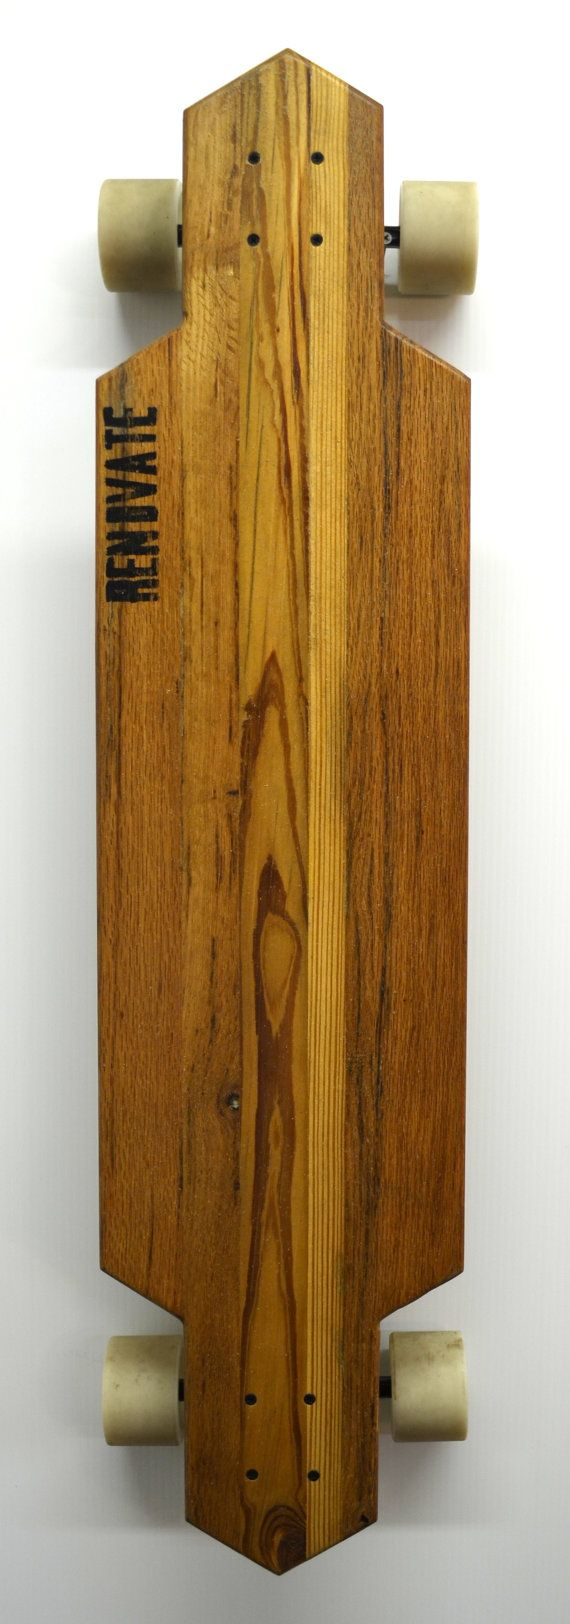 Reclaimed Solid Wood Longboard Flight40 by RenovateLongboards, $125.00